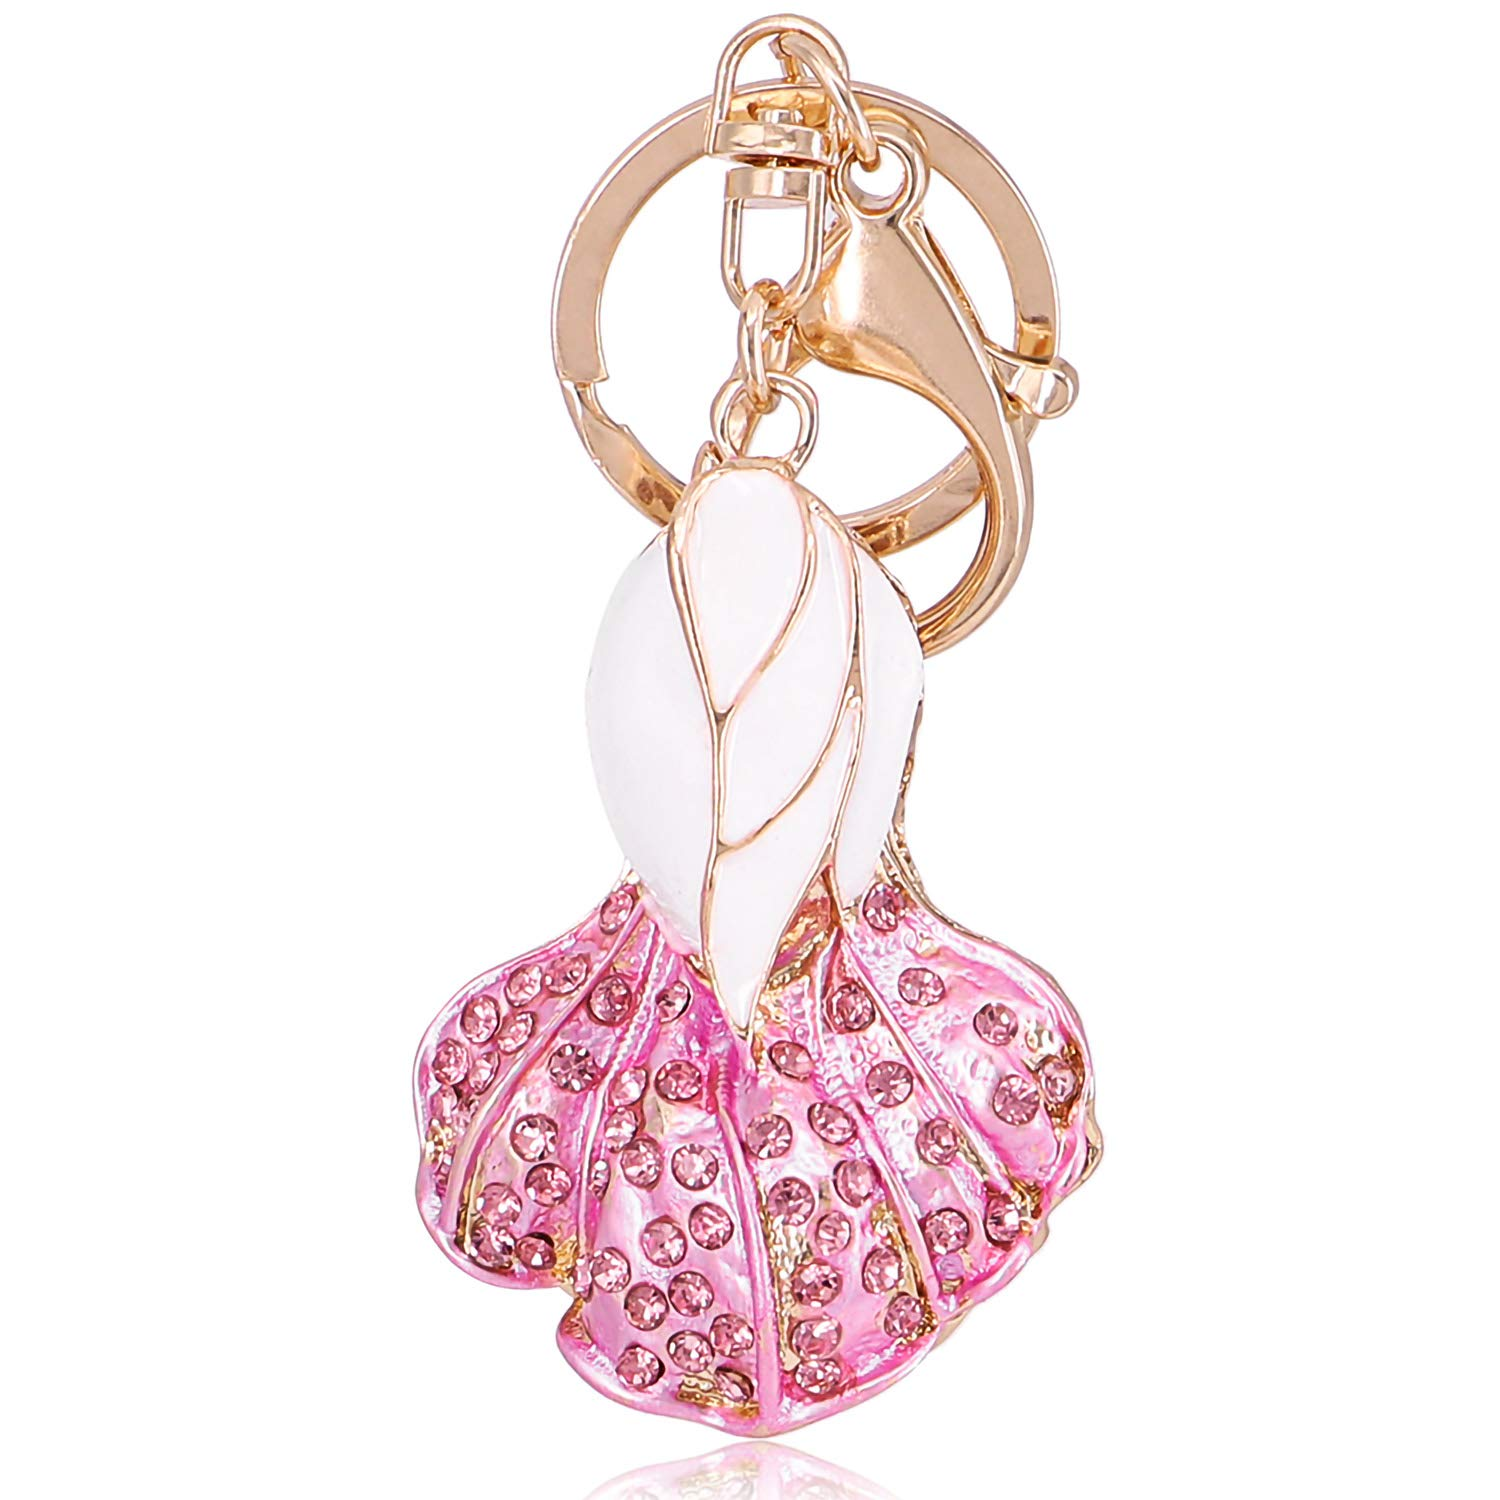 QTKJ Pink Cute Crystal Cabbage keychains for Women Bag Handbag Charms Key Ring Car Key Pendant Gift